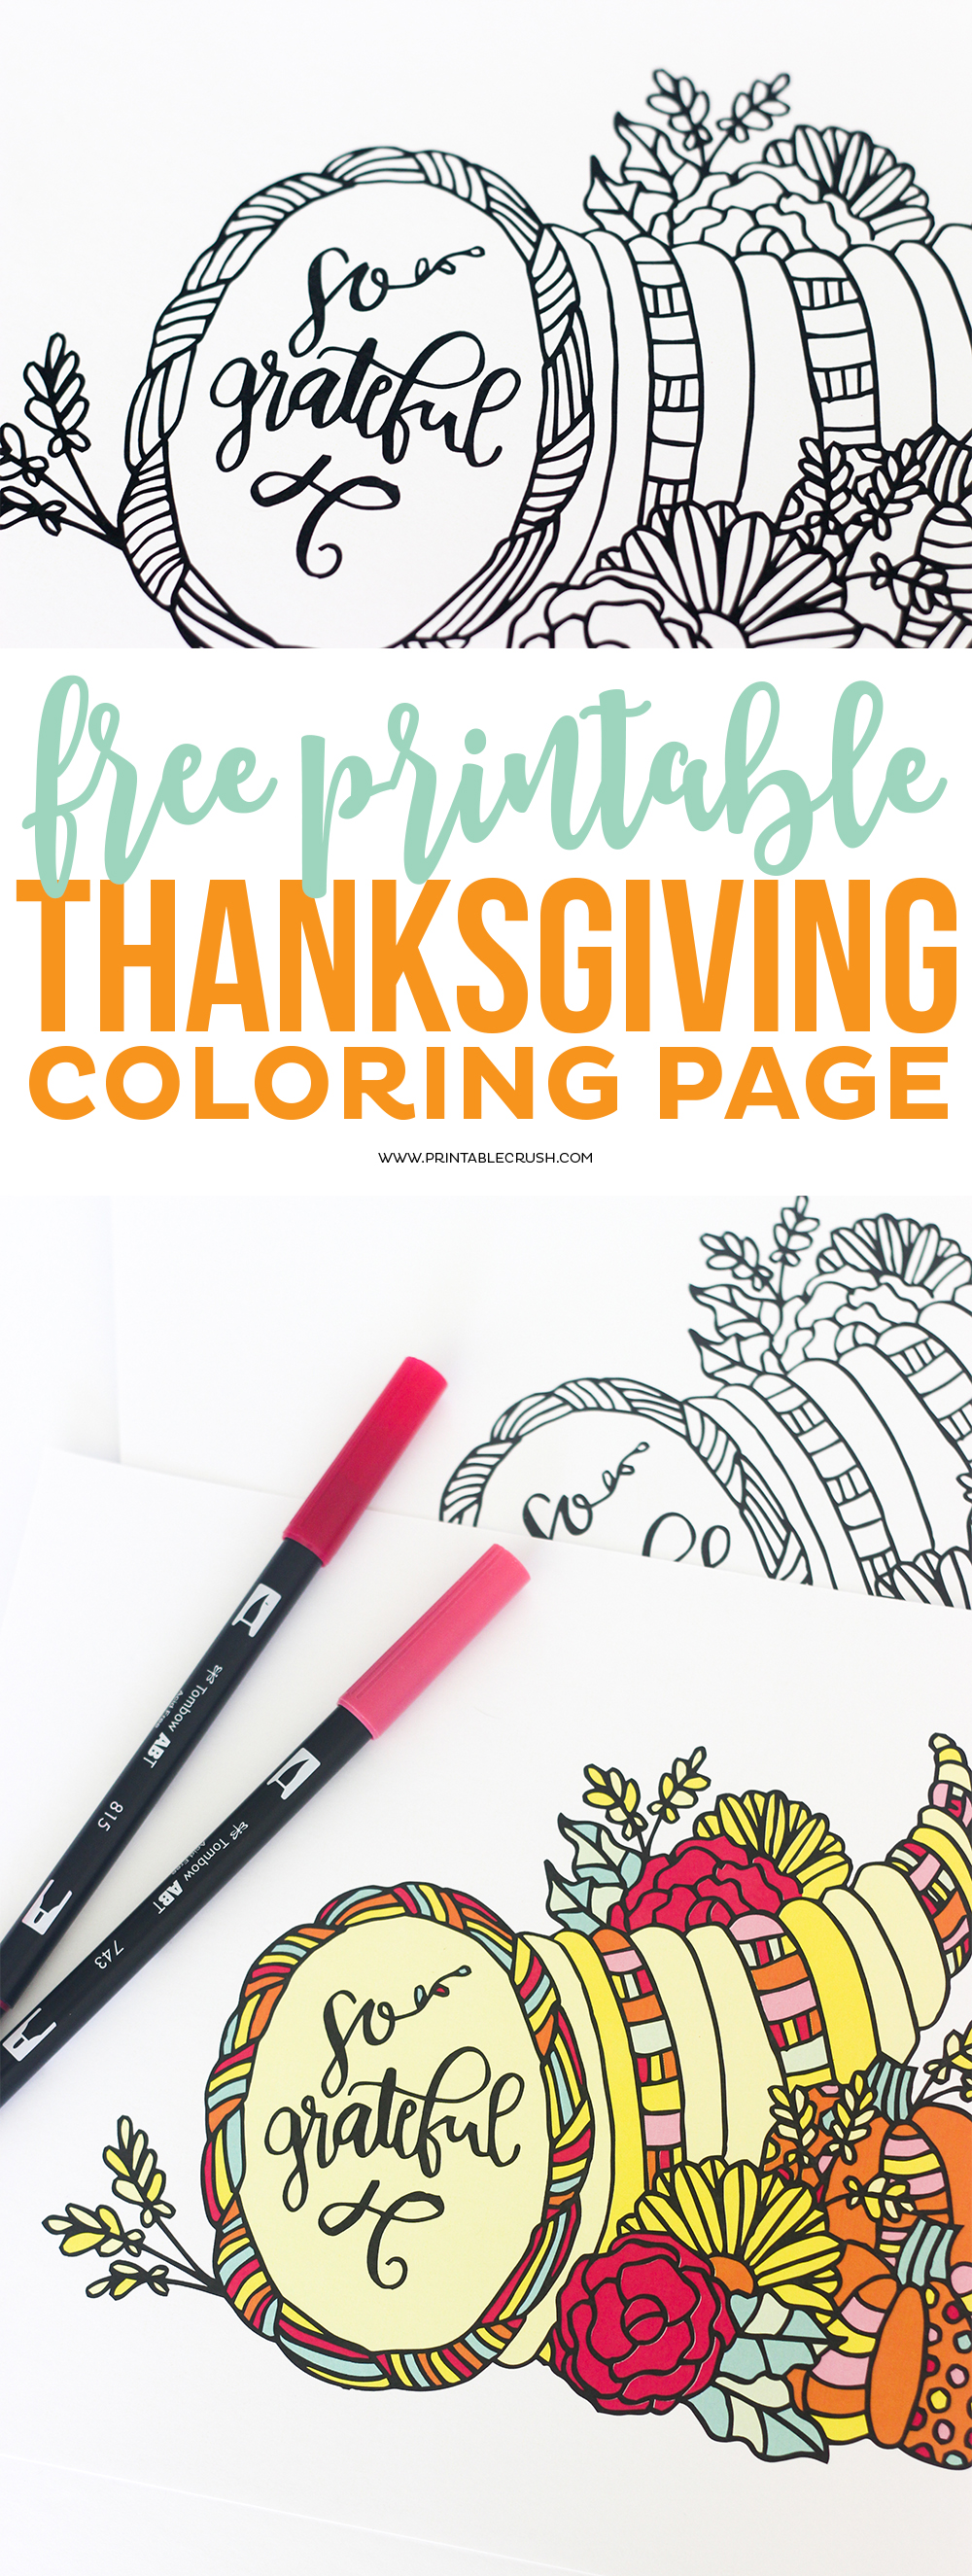 Thanksgiving Coloring Pages long pin collage